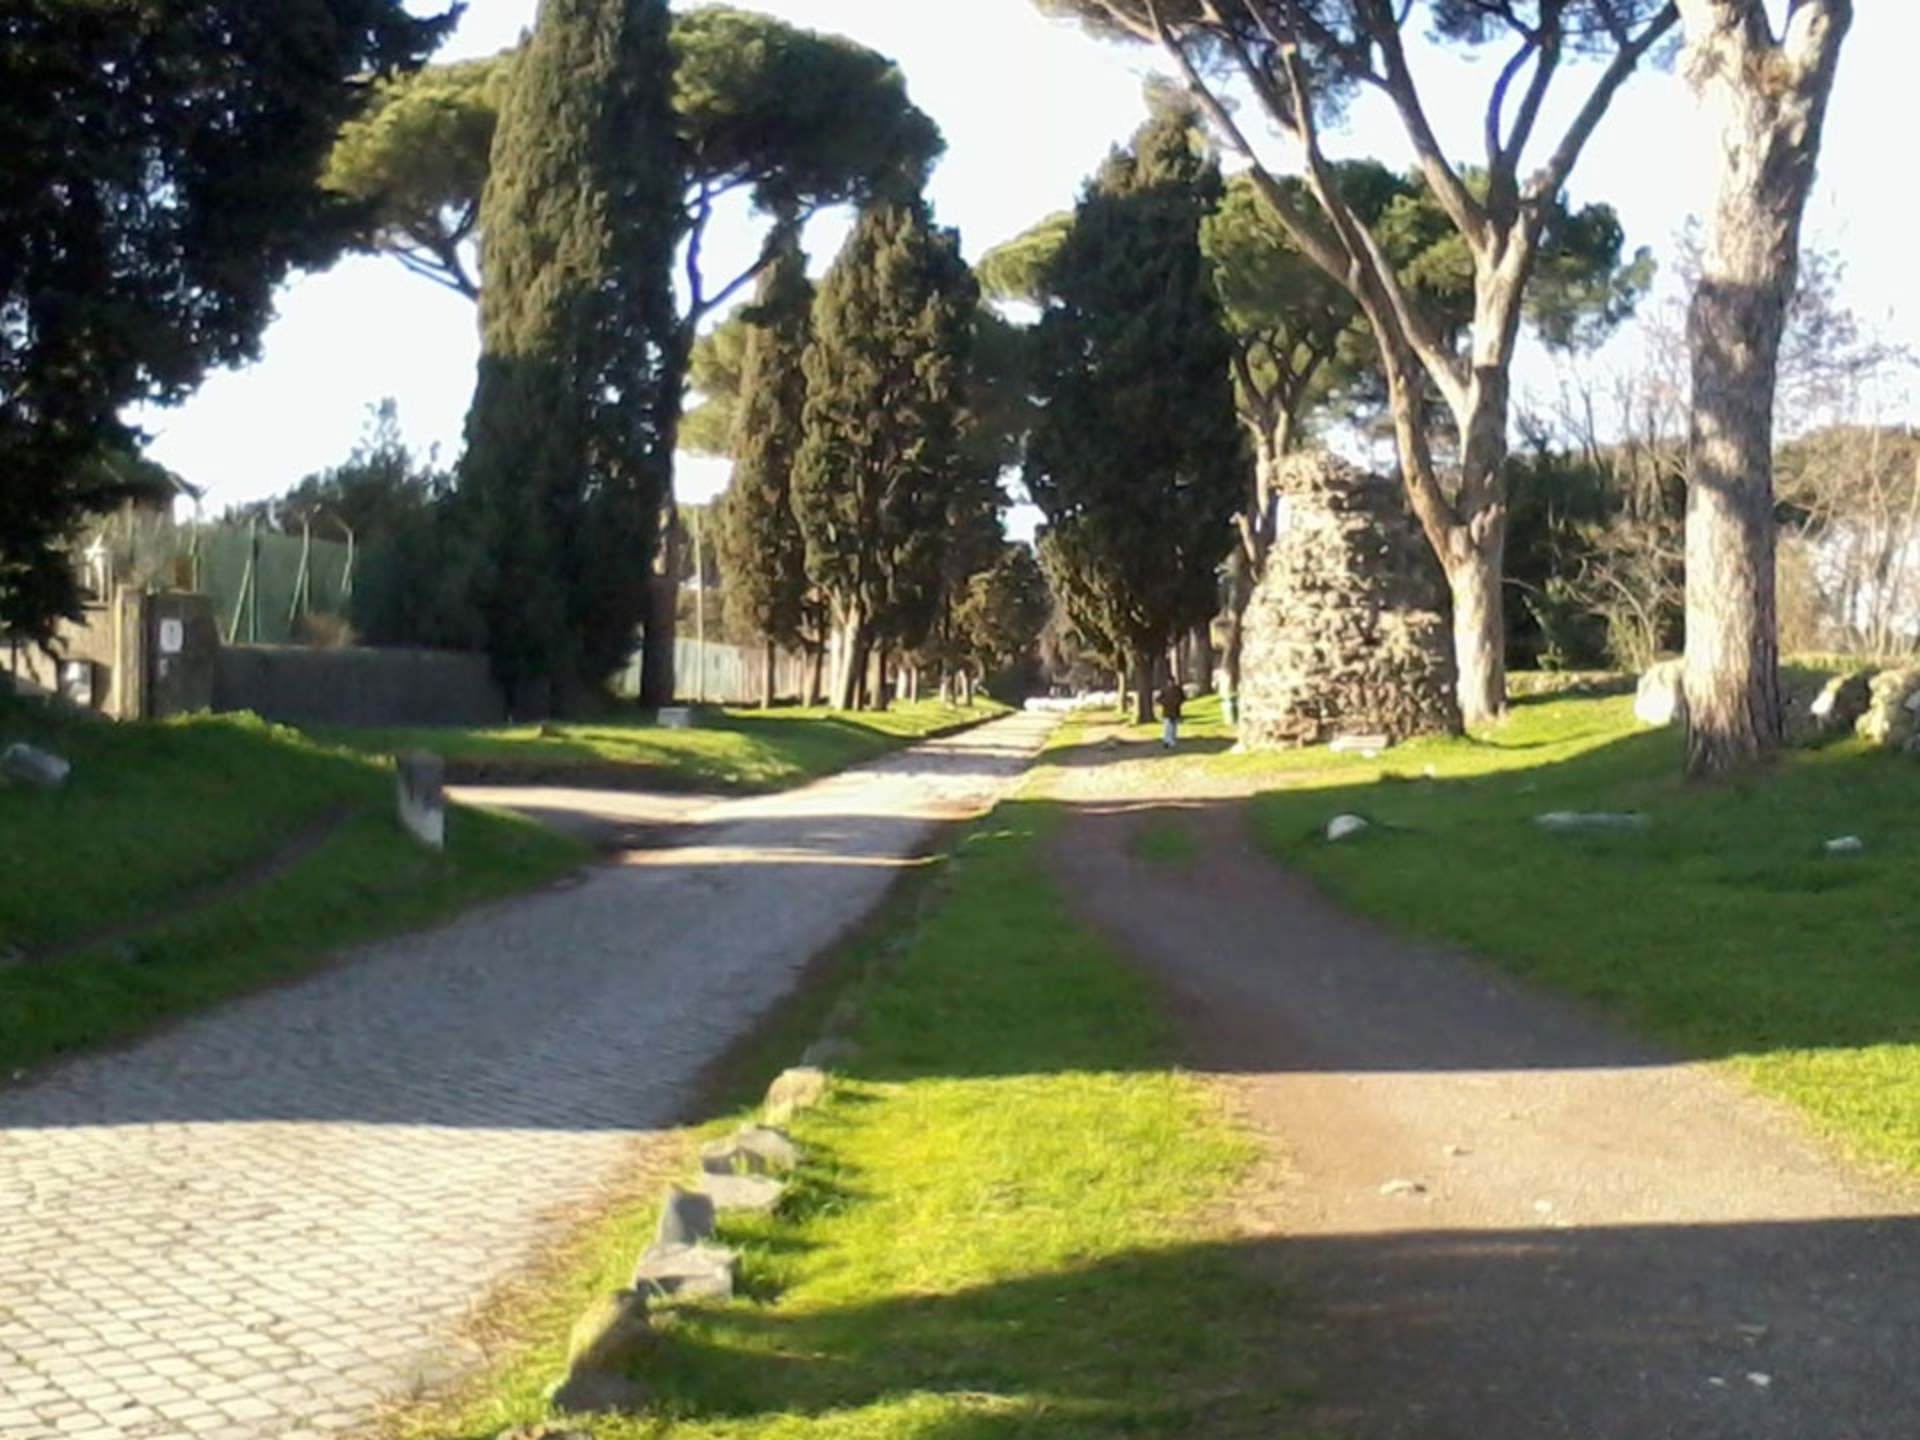 appian-way_Italy-Tour-With-Theresa_00